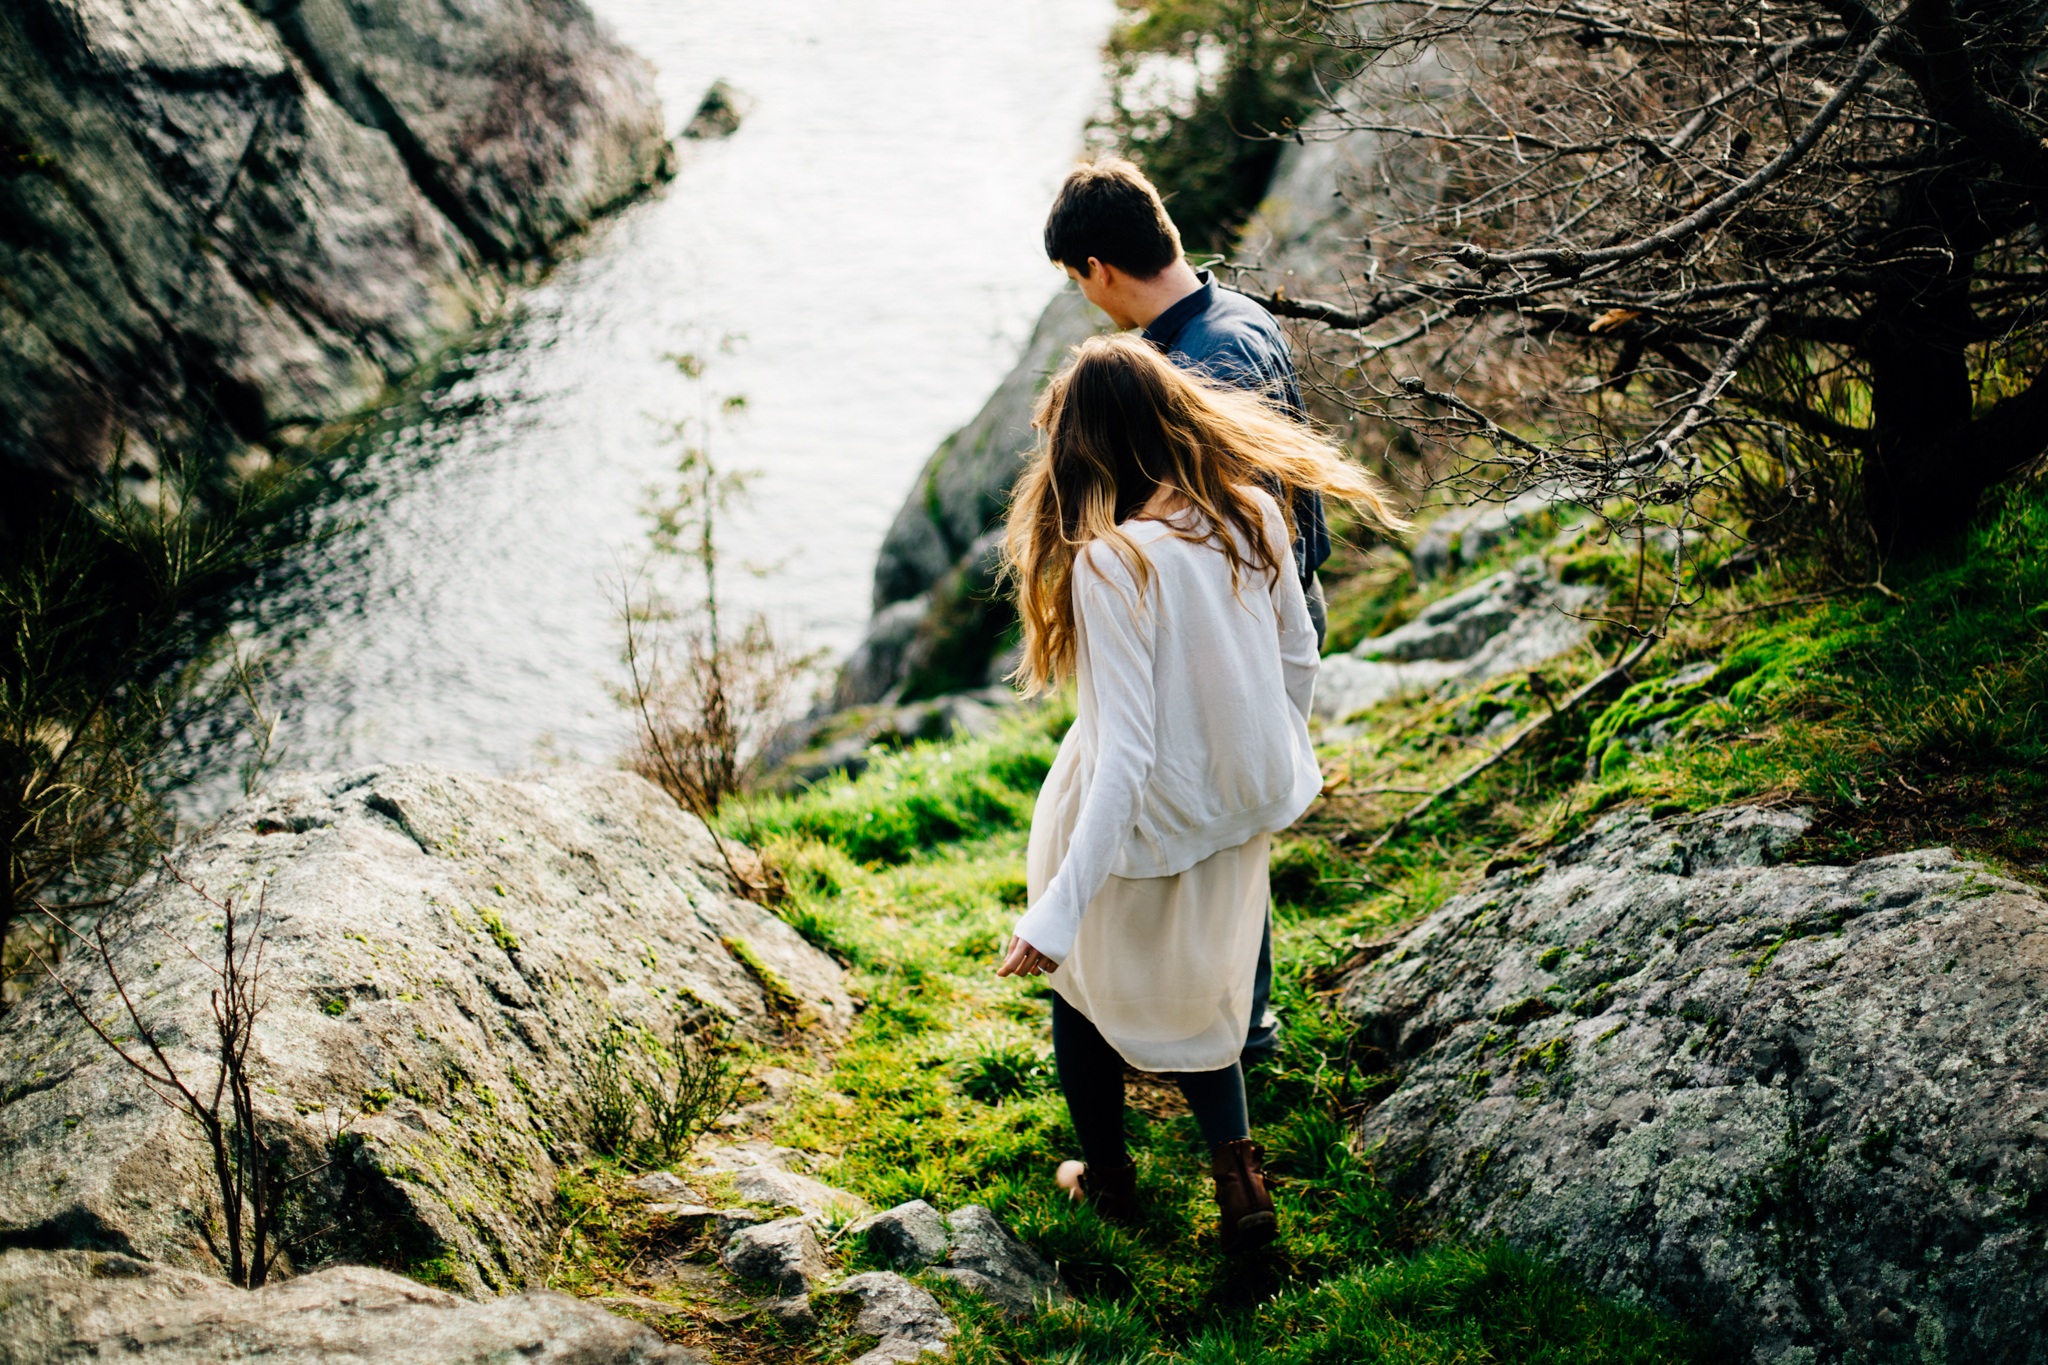 Vancouver Whytecliff Park Engagement Photographer - Emmy Lou Virginia Photography-13.jpg